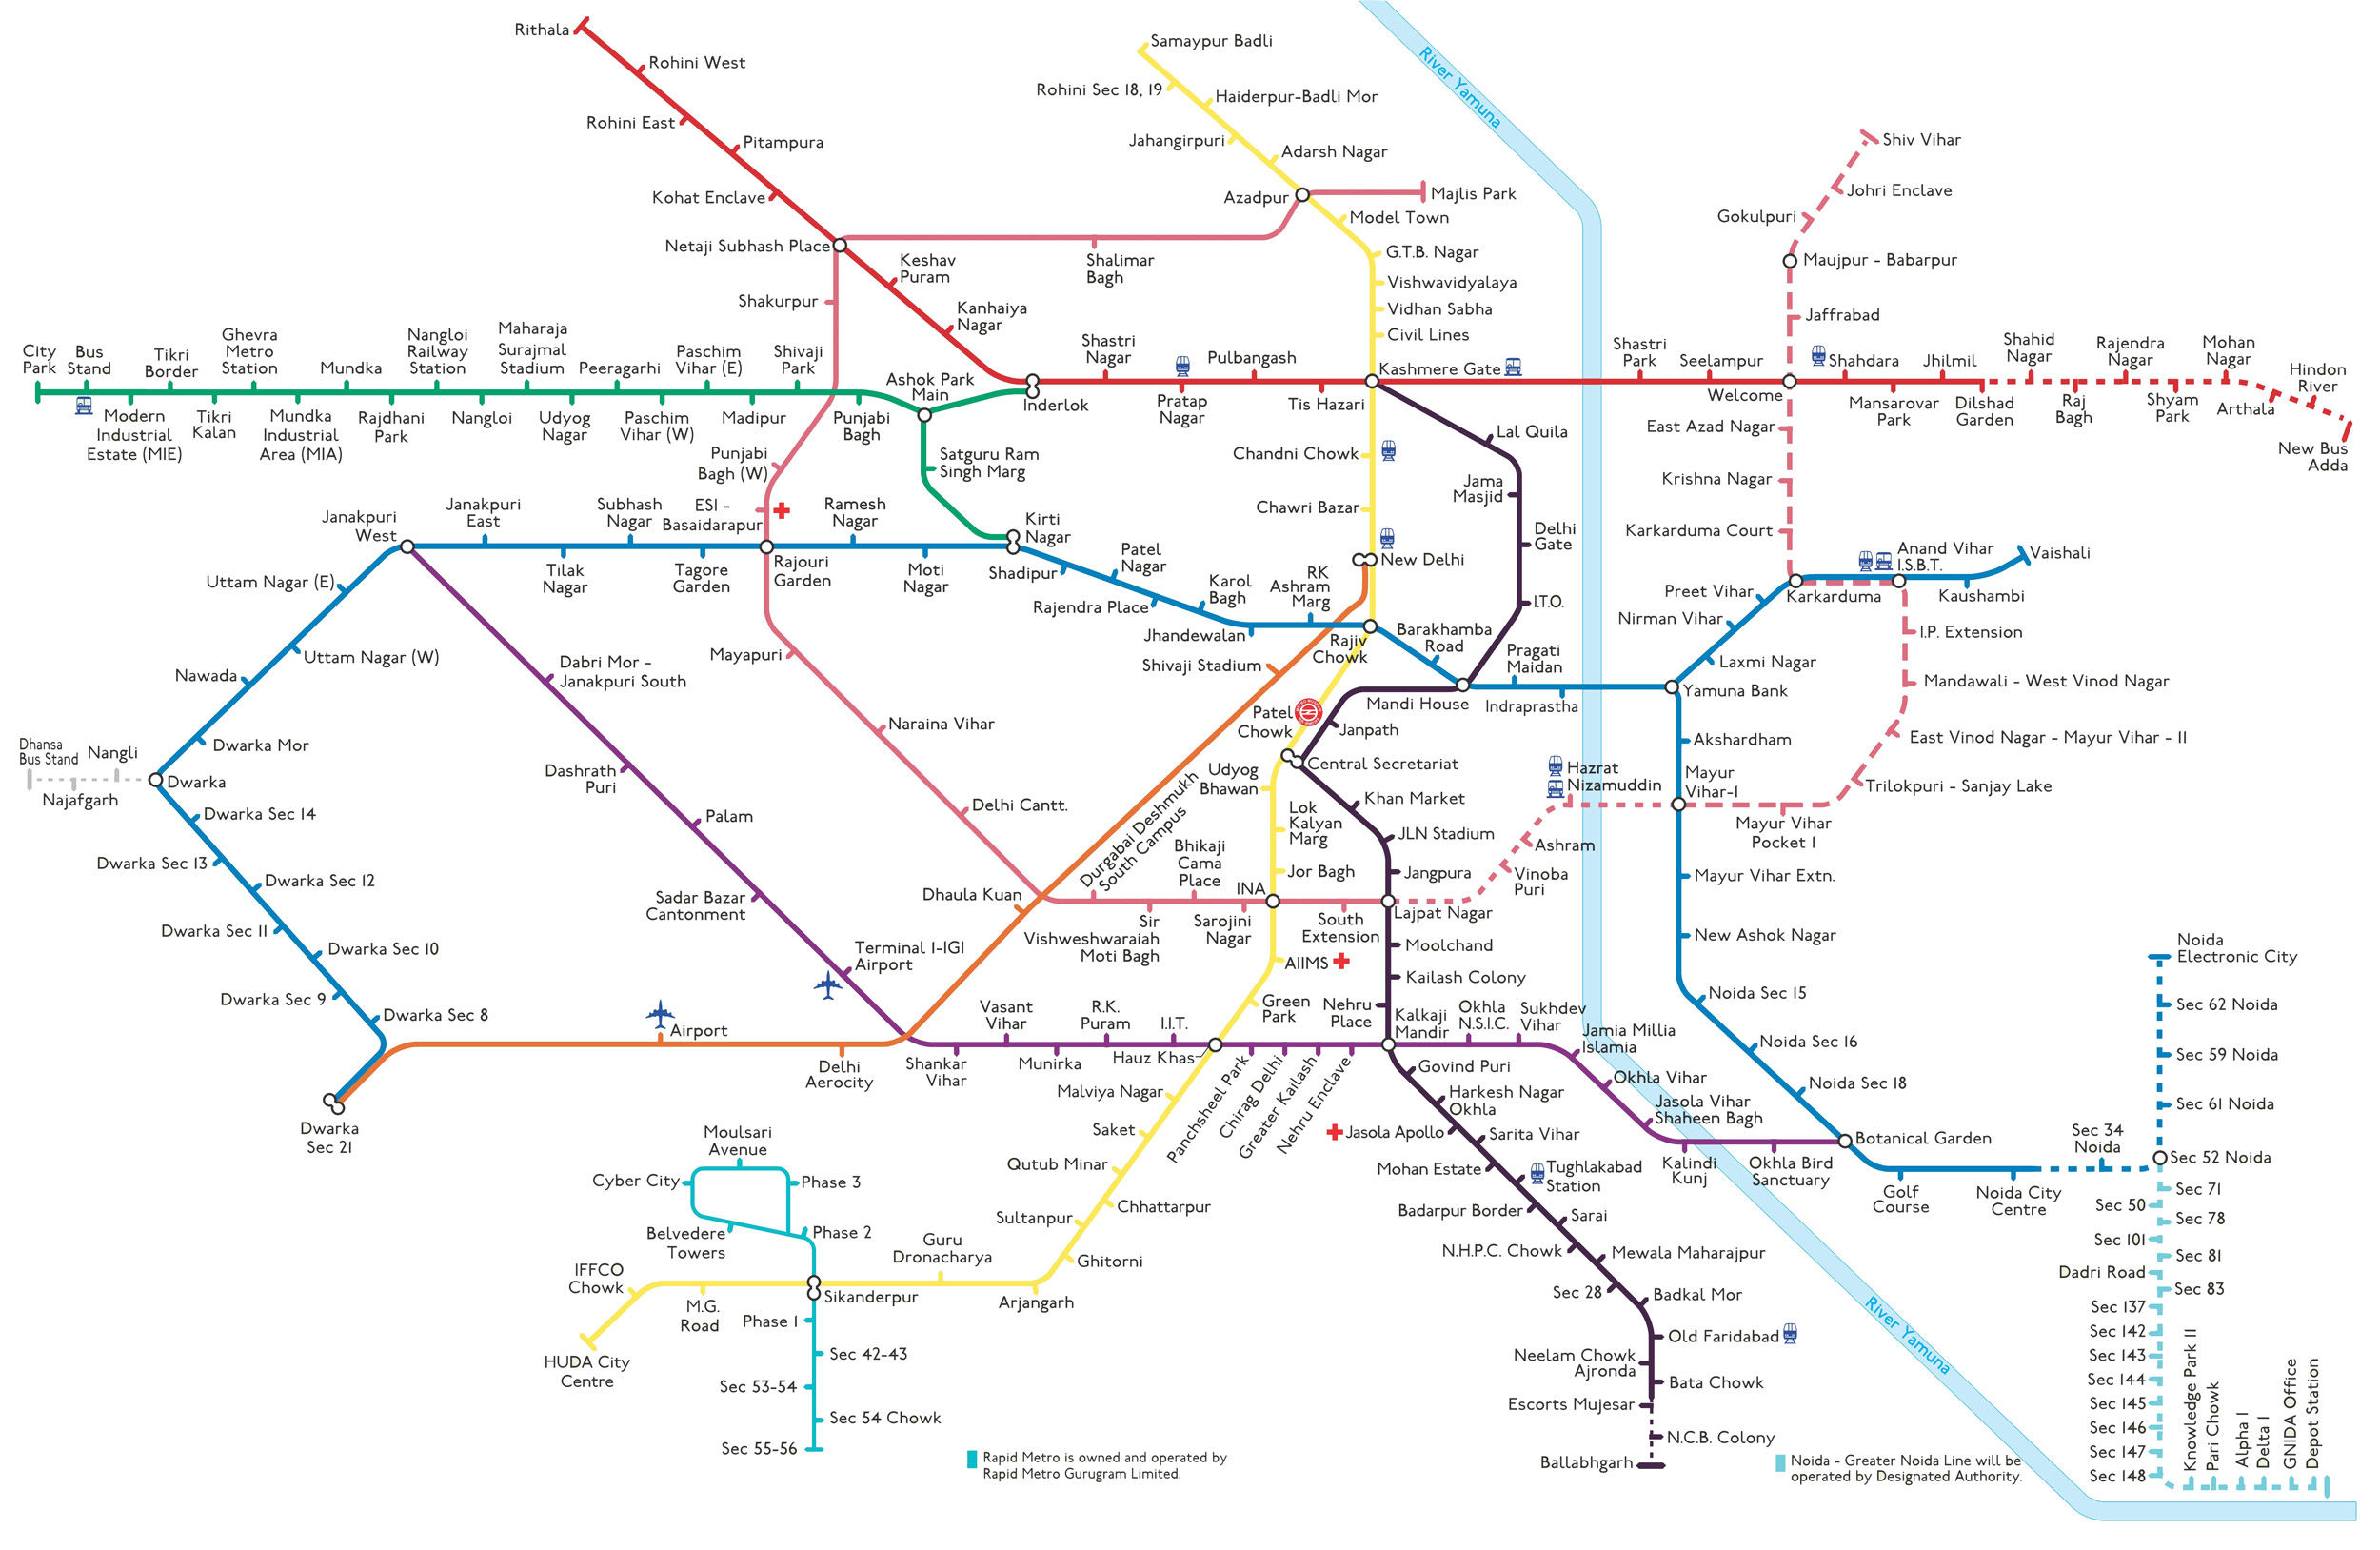 airport express metro route map Delhi Metro Map Noida Metro Route Map Updated Metro Route Map Hd airport express metro route map